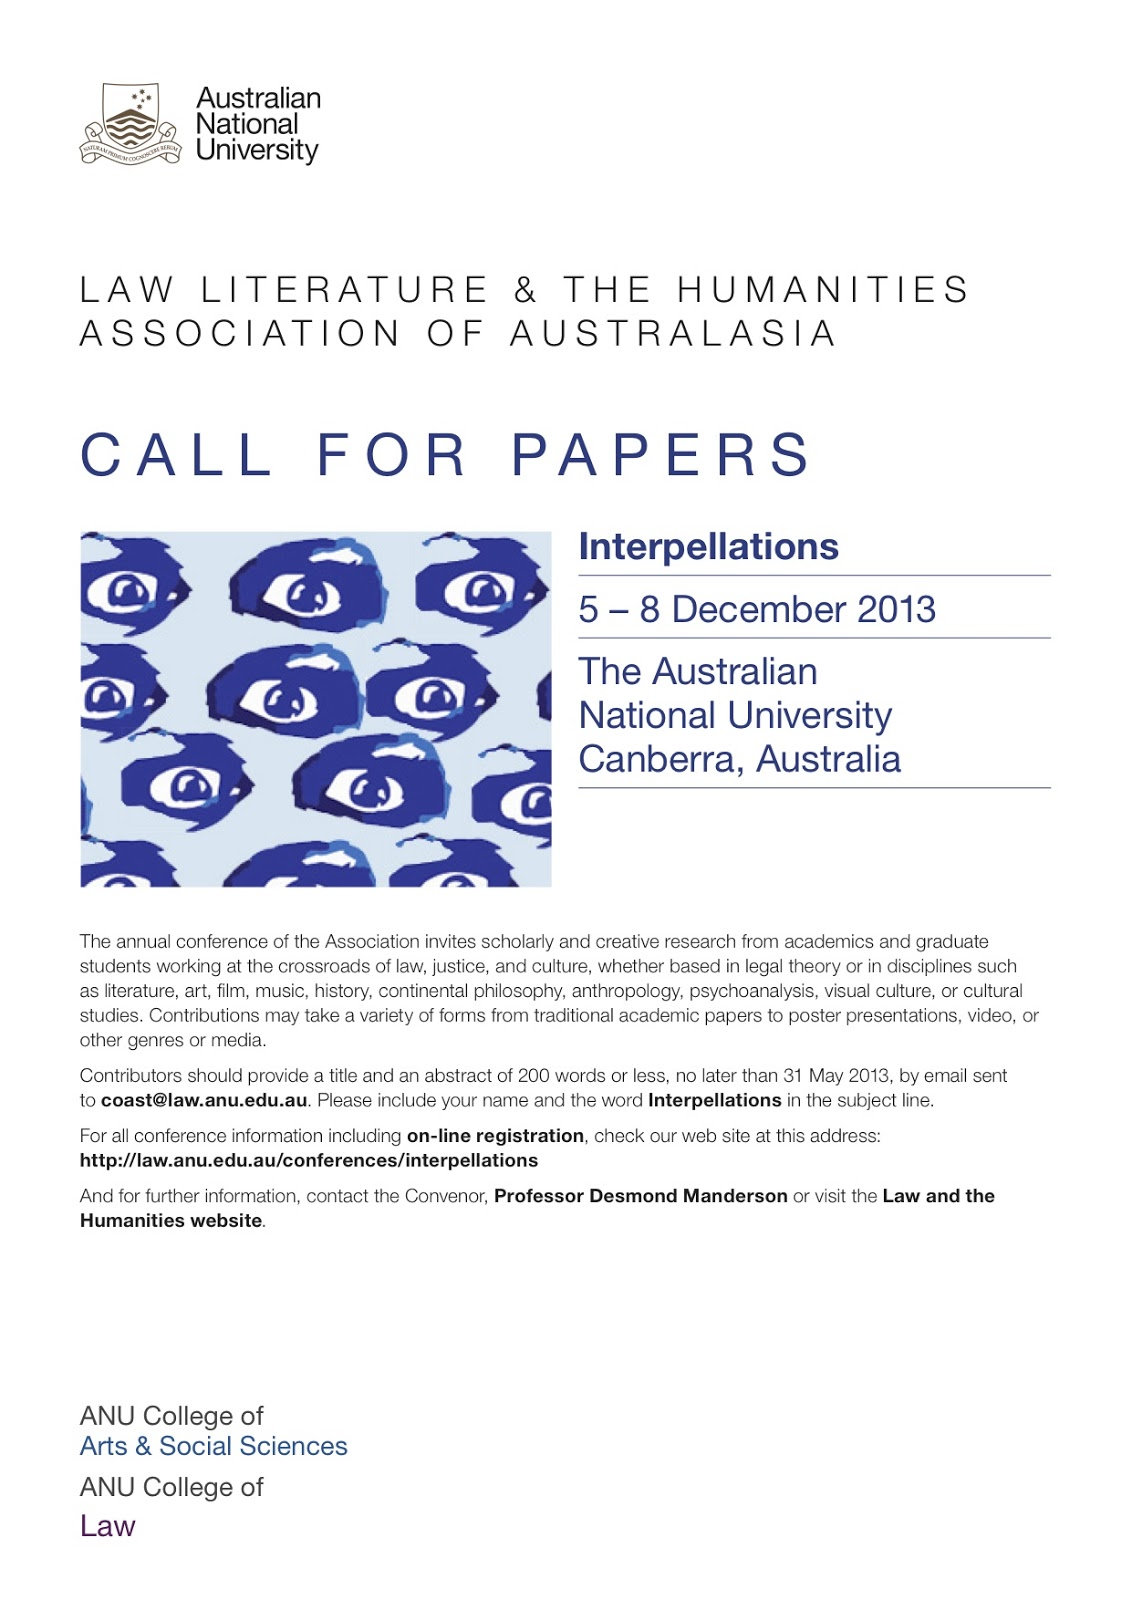 call for papers literary theory View cognitive literary theory research papers on academiaedu and historical framework to discuss the origin and changes of what we now call literature.